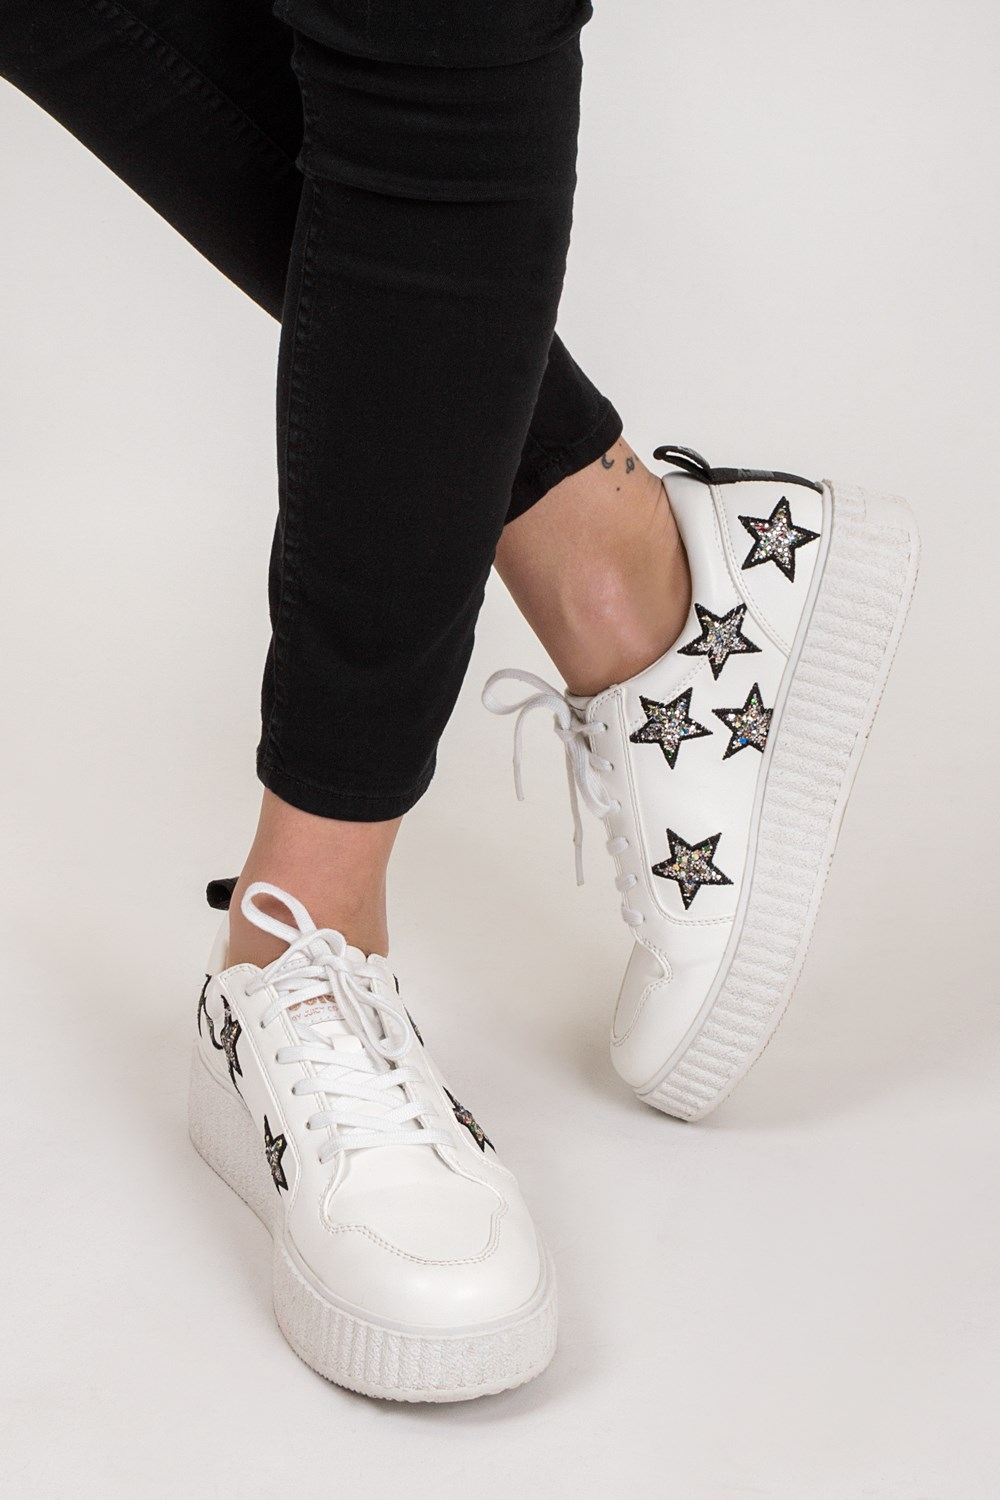 White Daisy Sneakers with Stars / Size